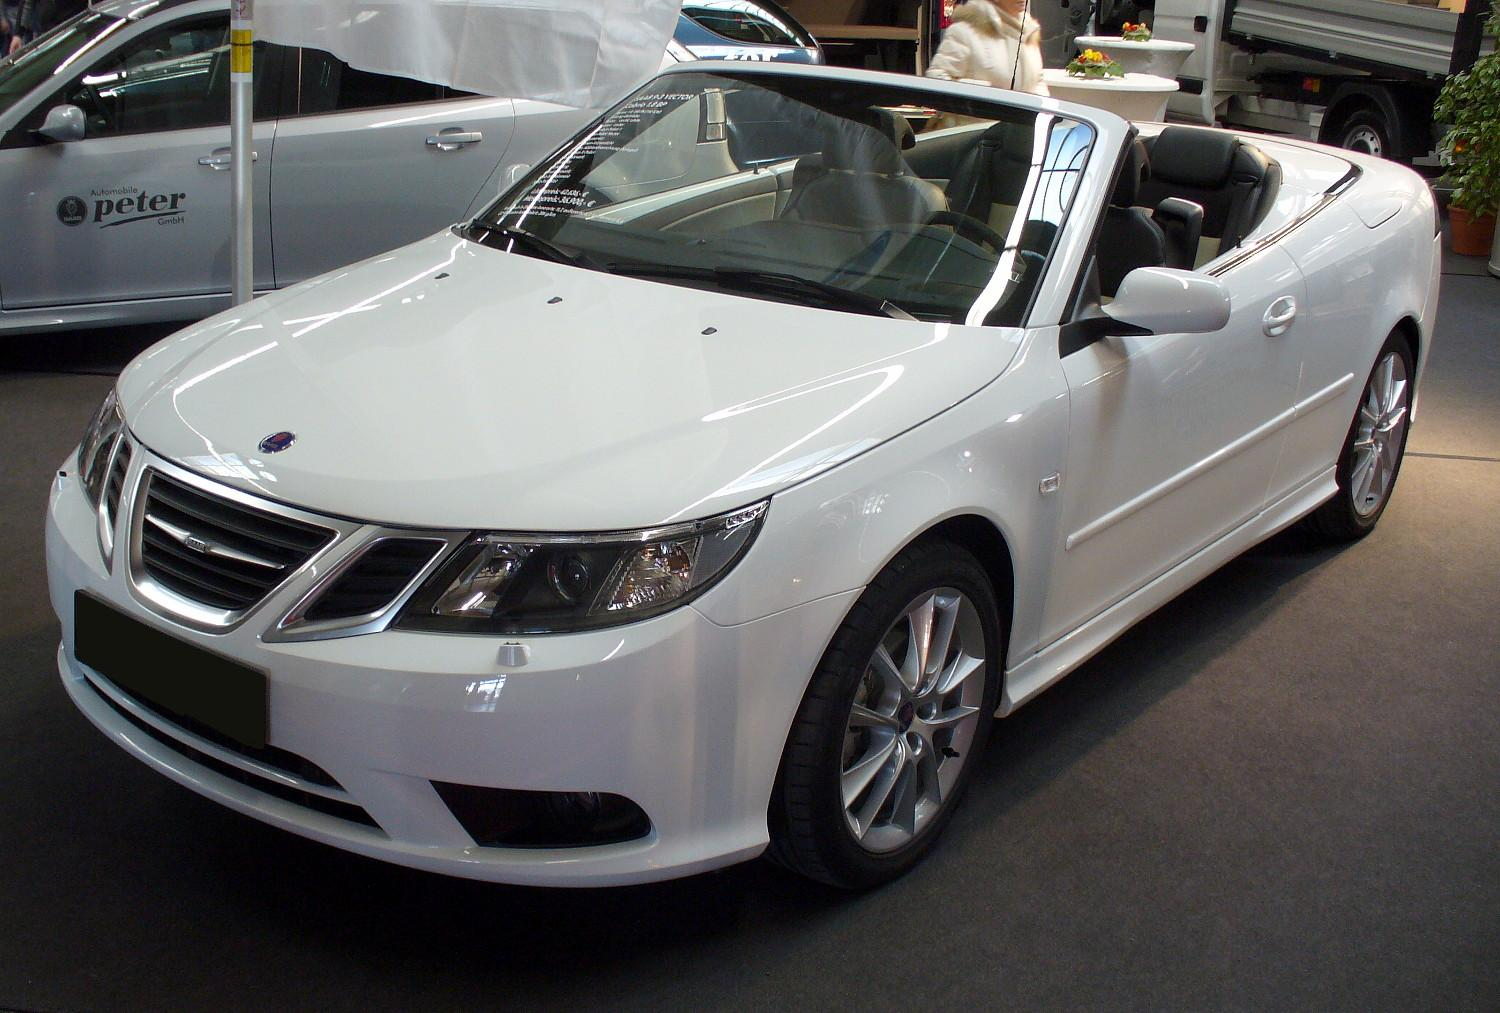 saab 9 3 cabriolet technical details history photos on. Black Bedroom Furniture Sets. Home Design Ideas